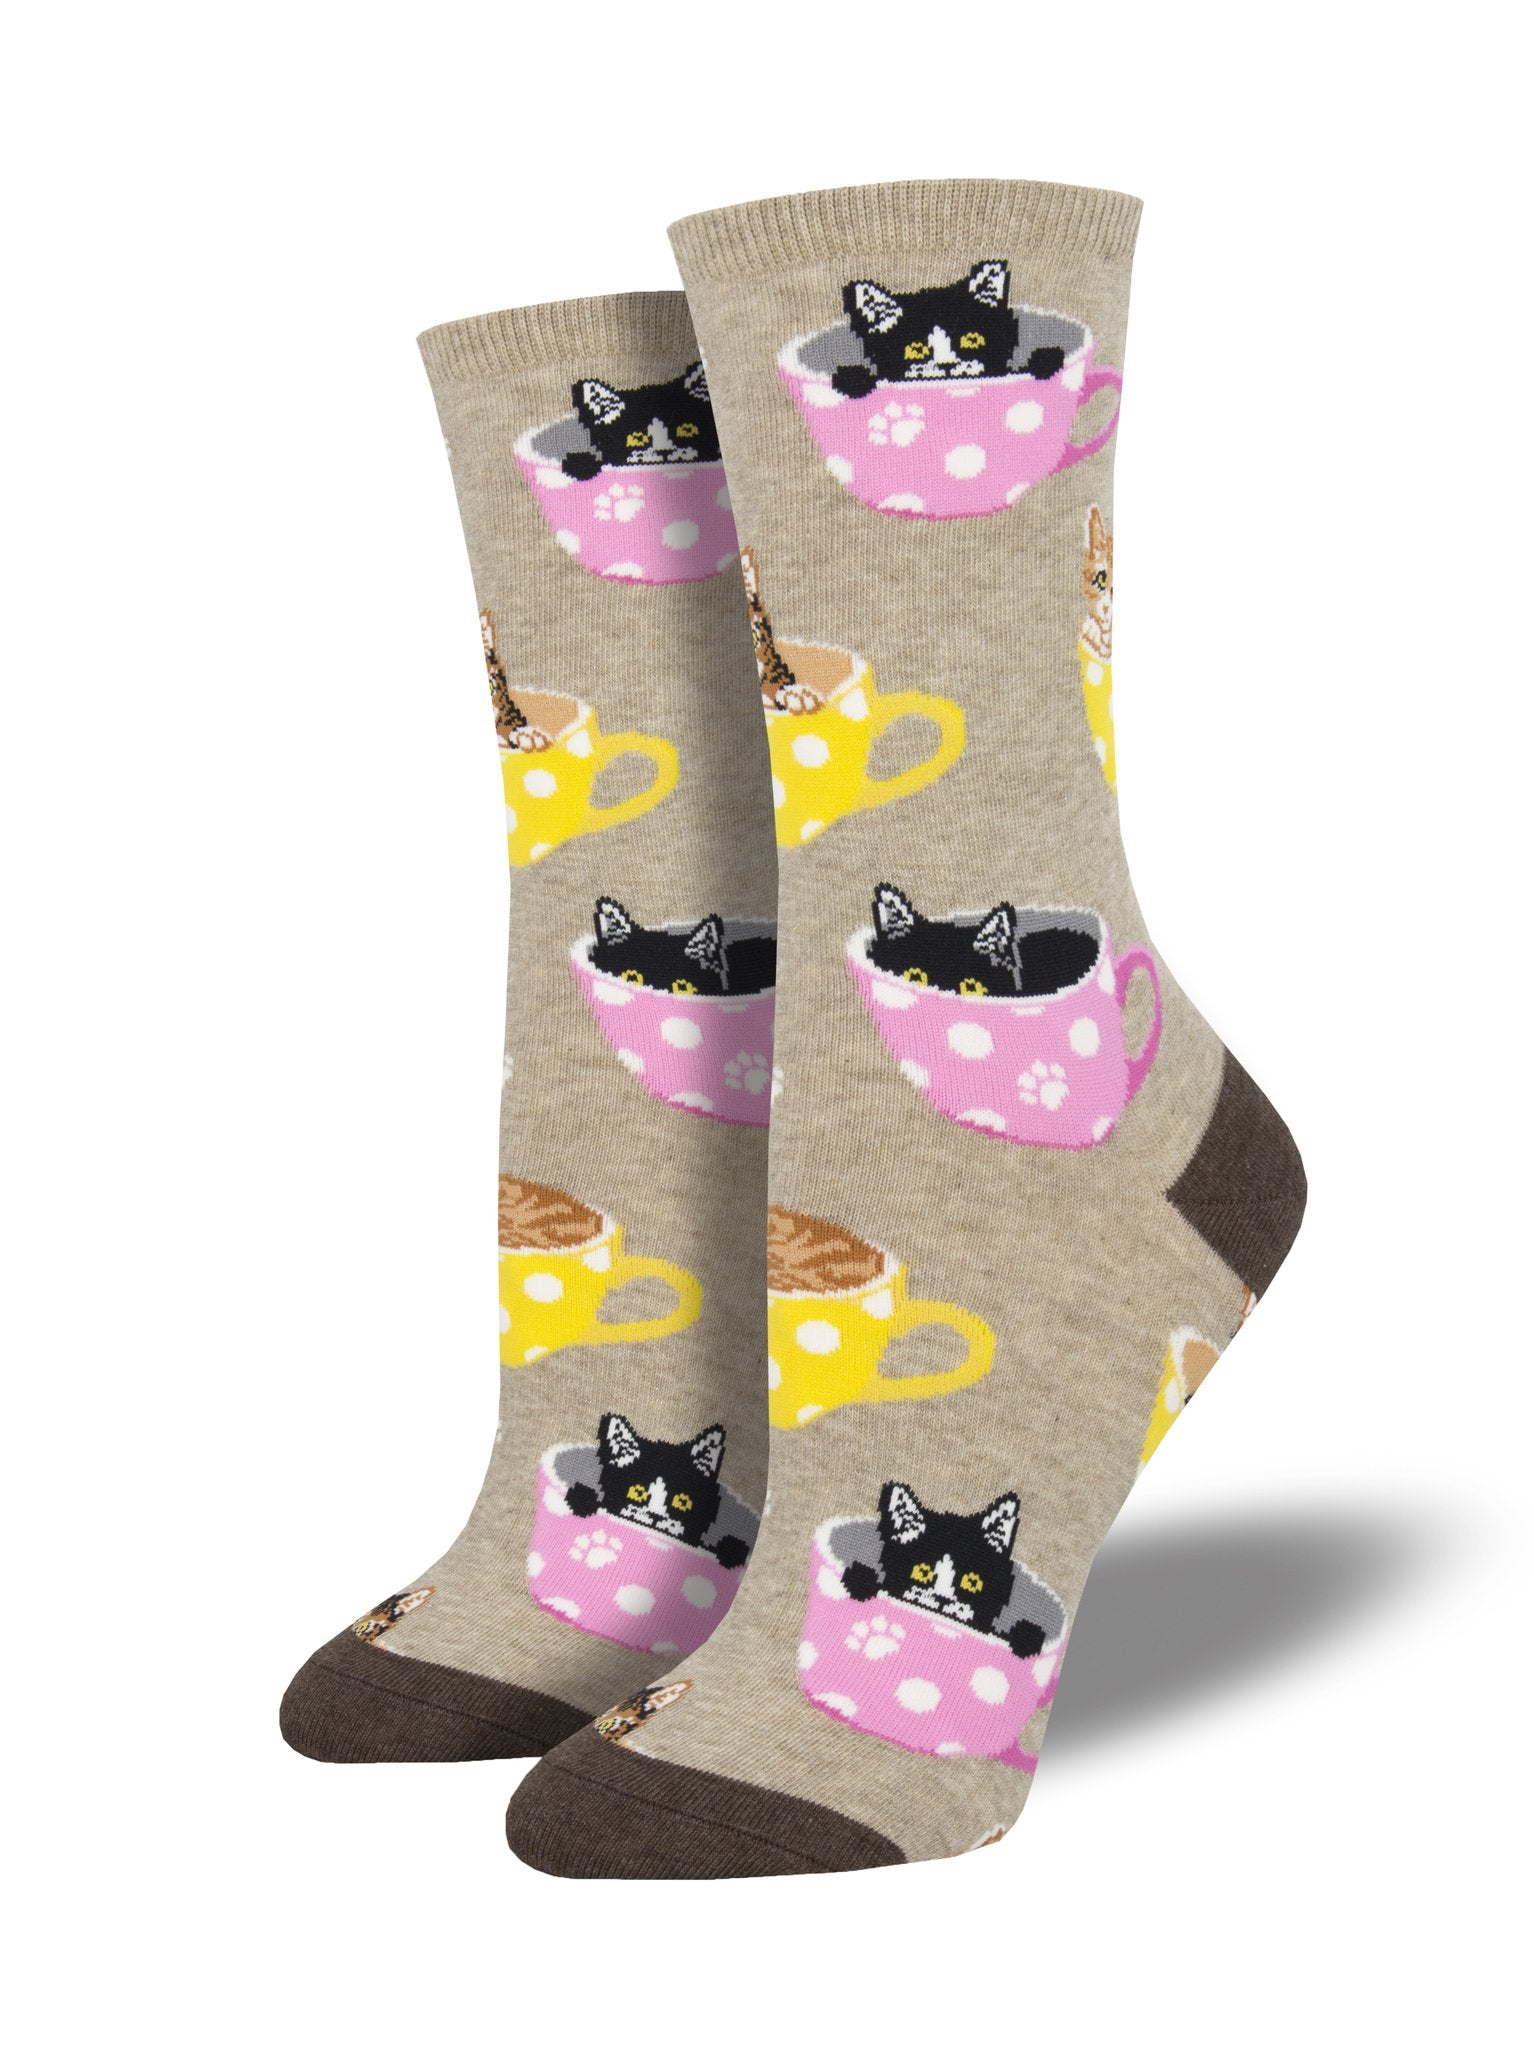 Cat-feinated Socks